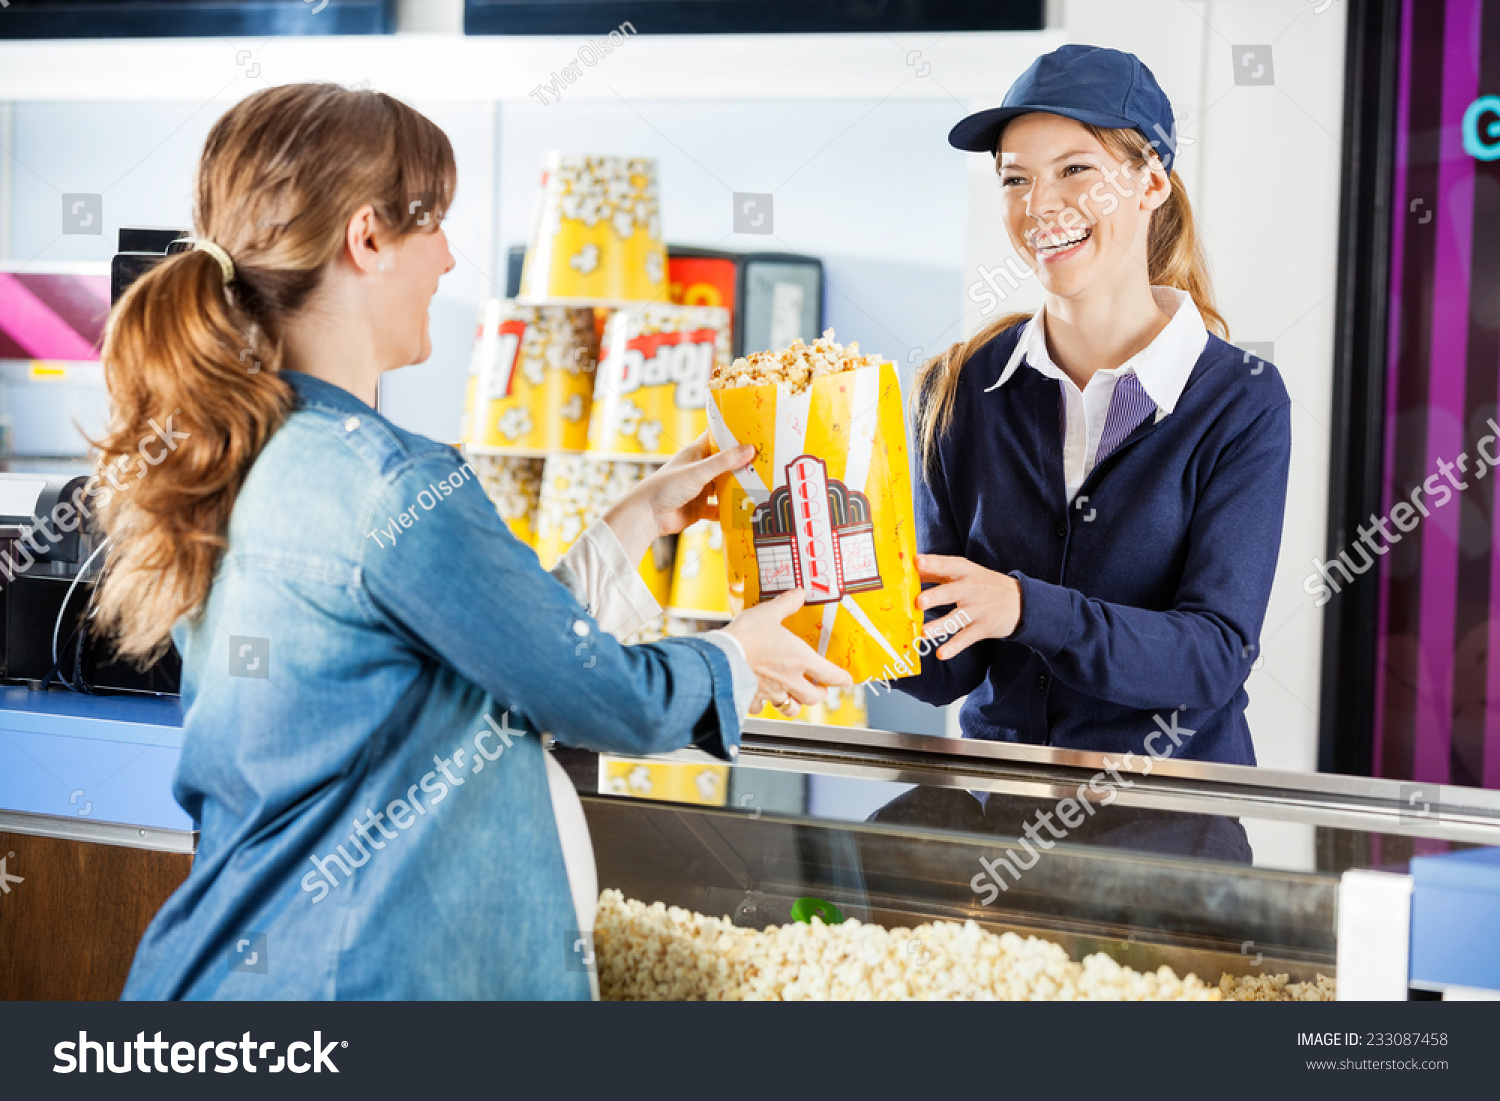 happy female seller giving popcorn paperbag stock photo  happy female seller giving popcorn paperbag to pregnant w at cinema concession stand